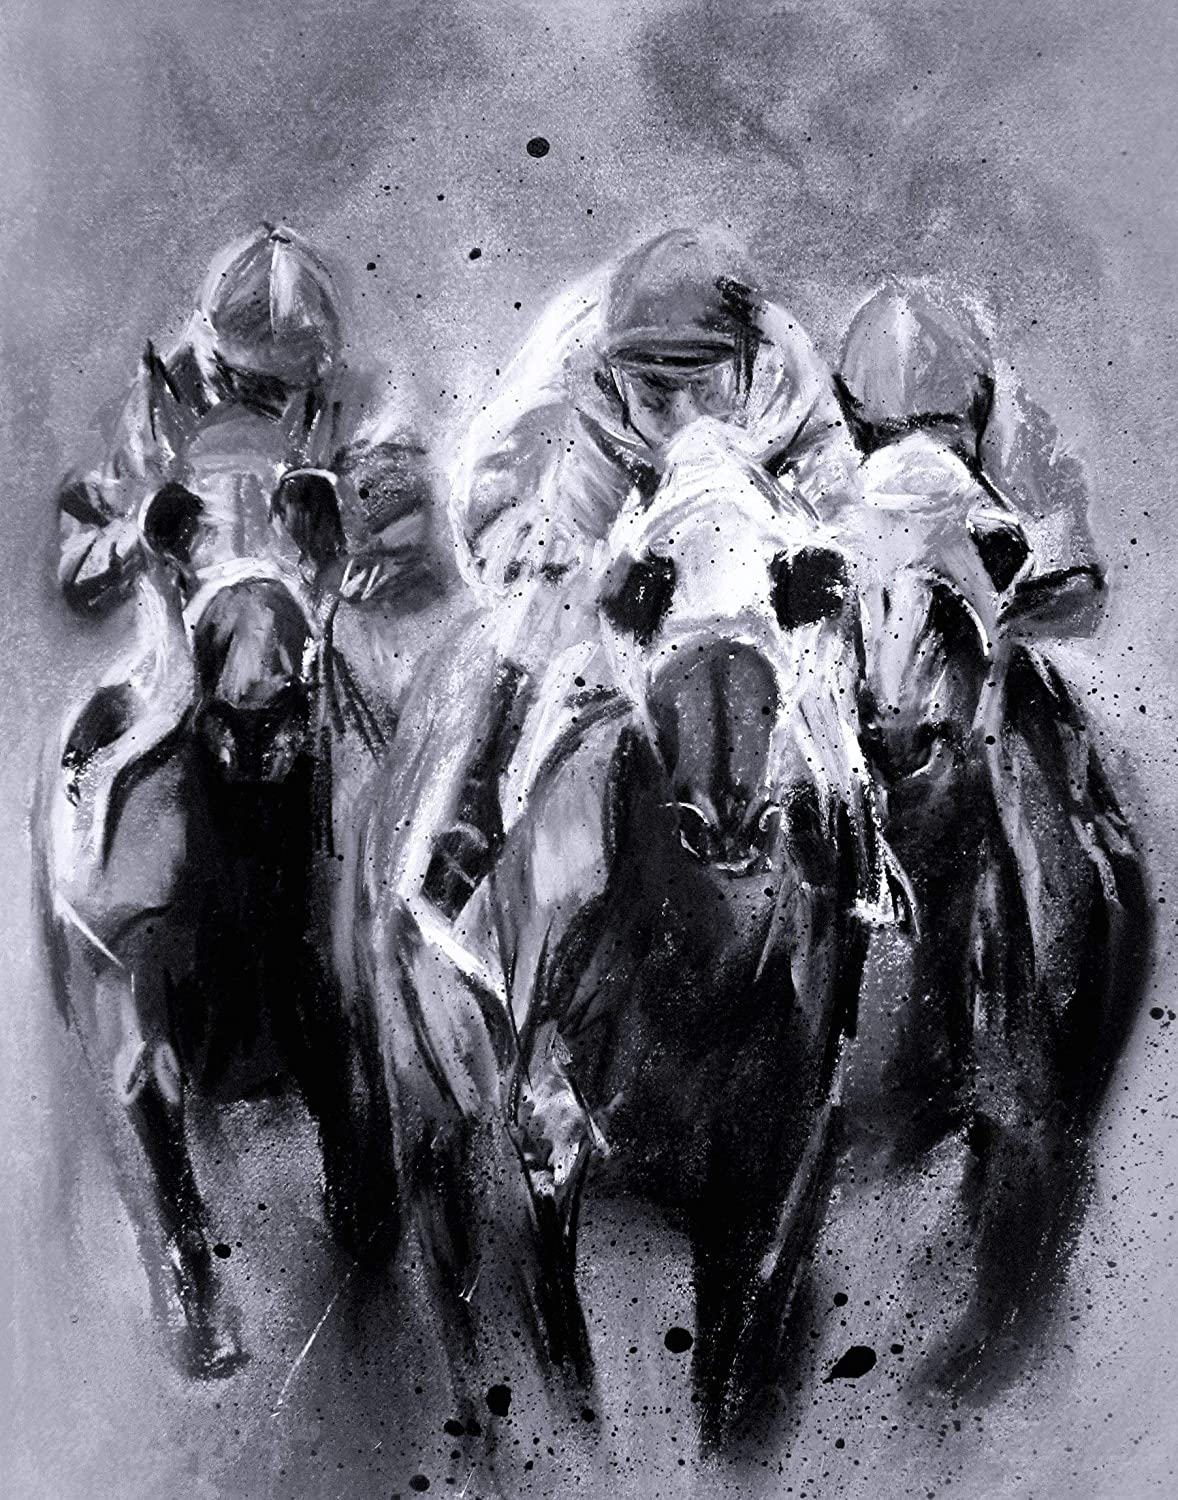 Amazon Com Racing Trio In Black And White Contemporary Race Horse Fine Art Print 11 X 14 Inch From Original Pastel Painting Handmade